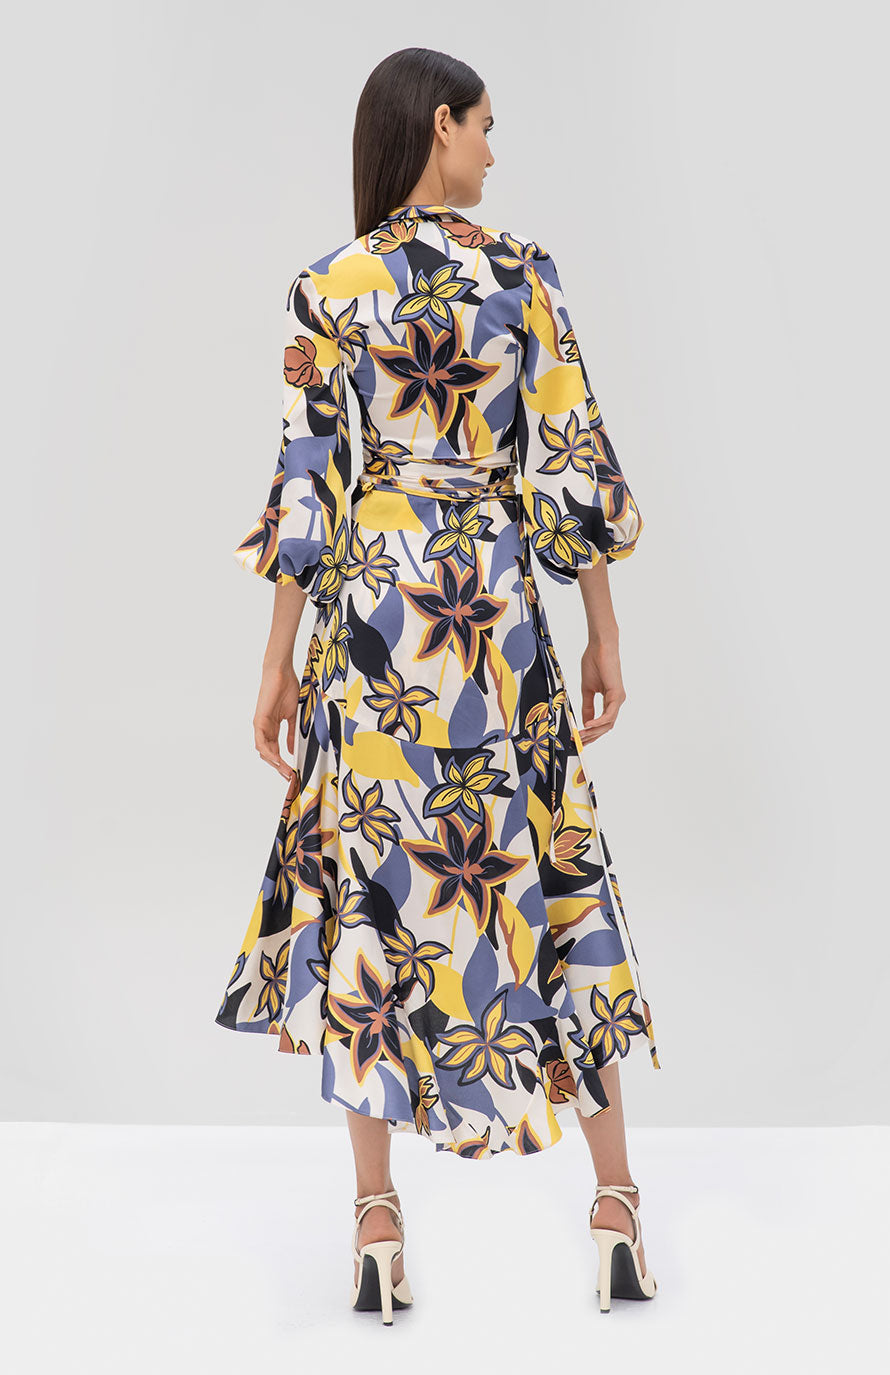 Alexis Bonet Top and Kamari Skirt in Tahitian Floral from the Pre Fall 2019 Ready To Wear Collection - Rear View